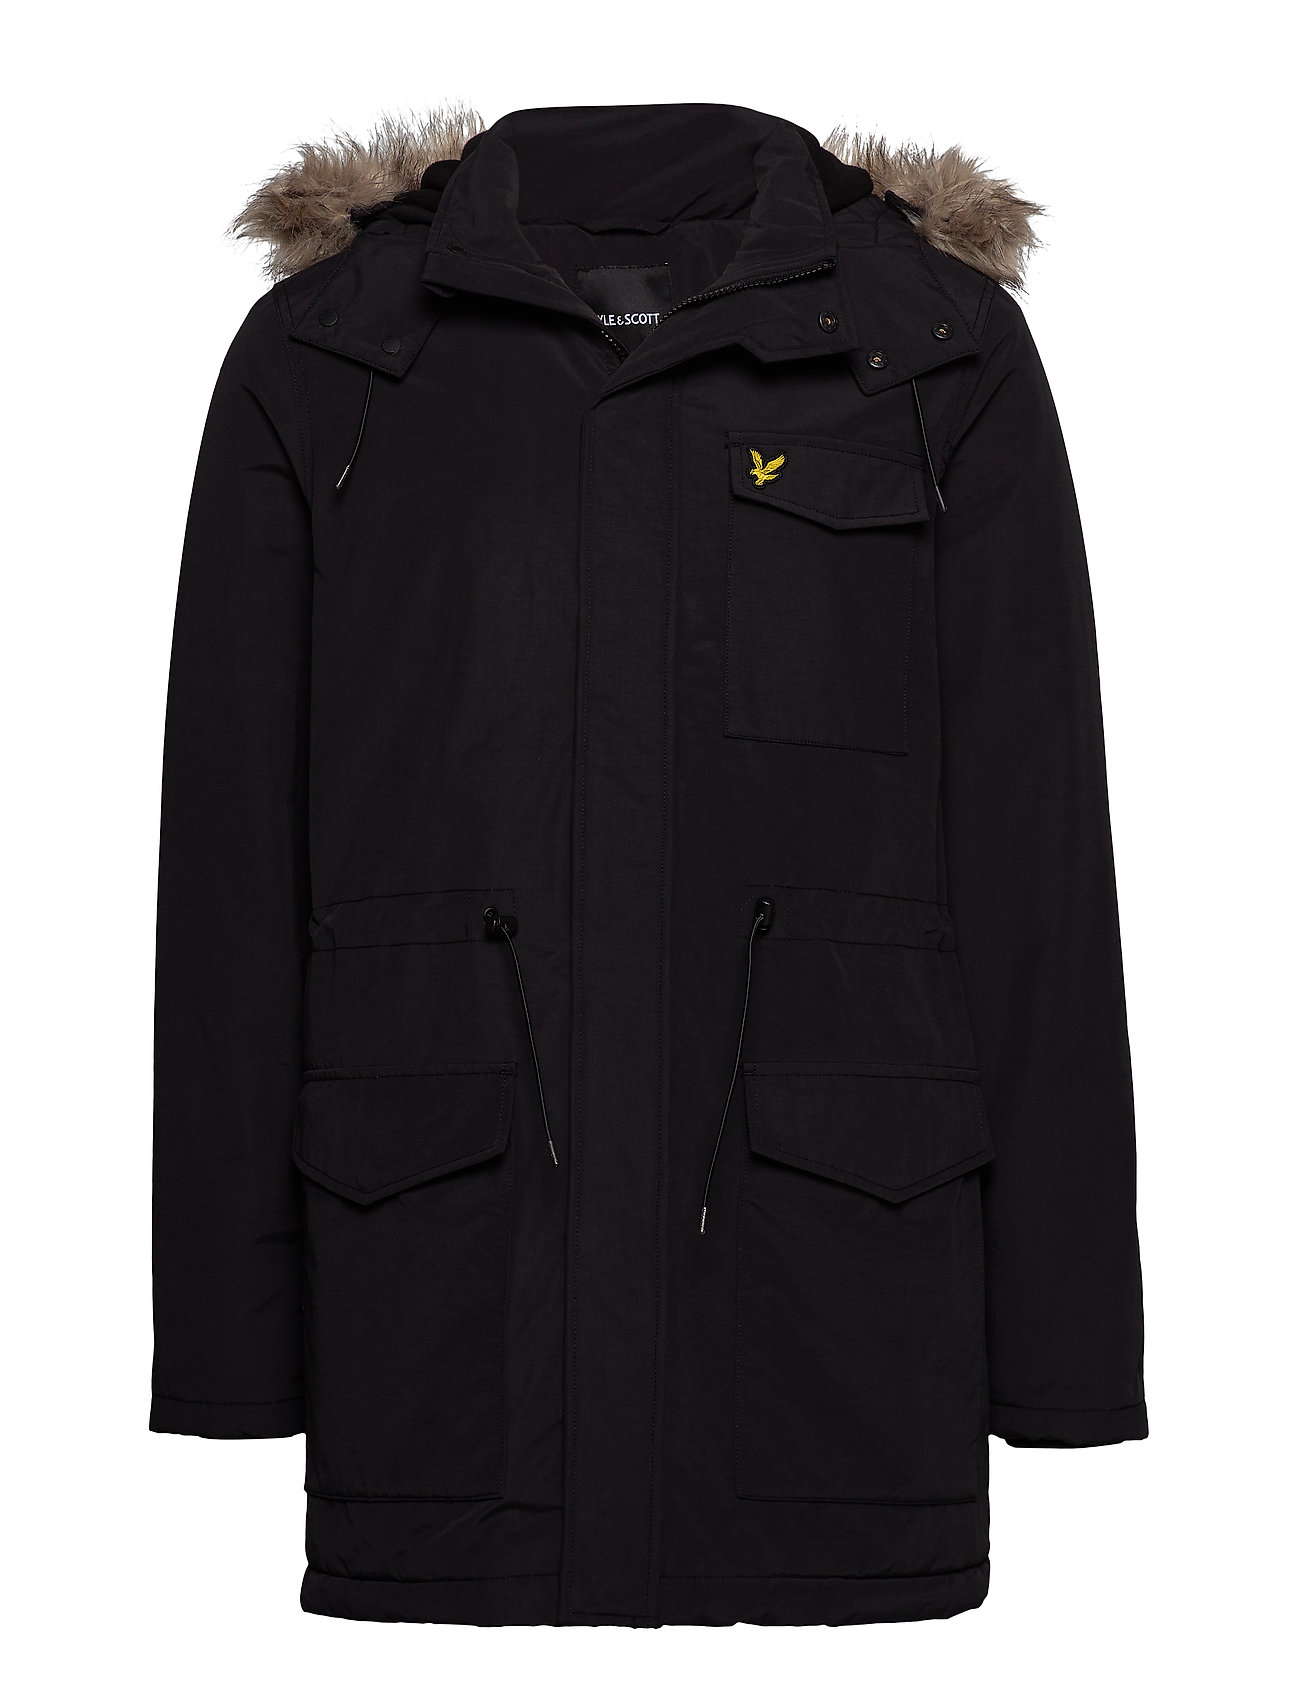 Lyle & Scott Winter Weight Microfleece Jacket - TRUE BLACK